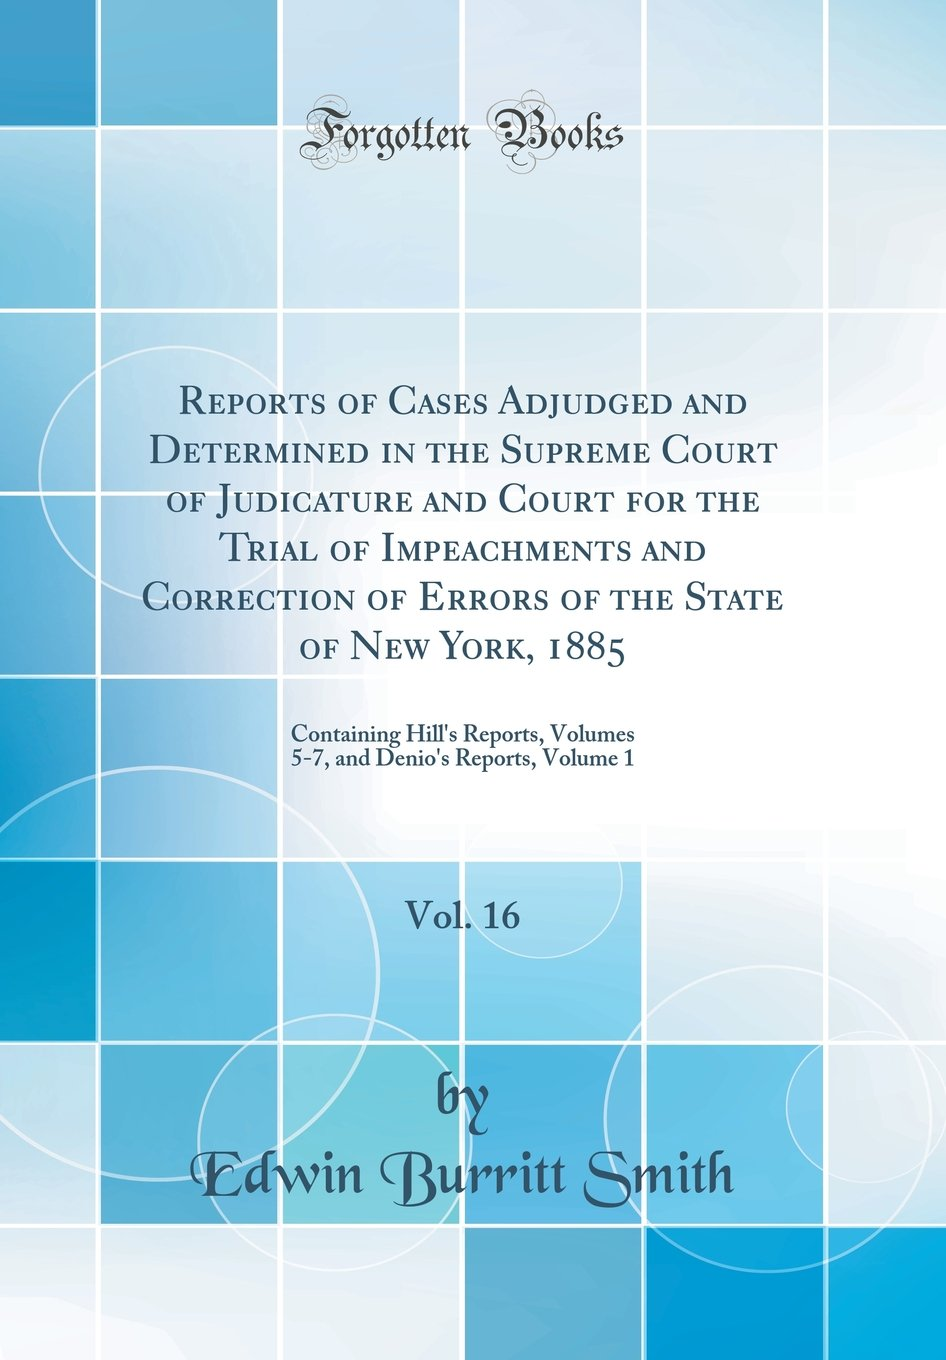 Reports of Cases Adjudged and Determined in the Supreme Court of Judicature and Court for the Trial of Impeachments and Correction of Errors of the ... Volumes 5-7, and Denio's Reports, Volume 1 ebook